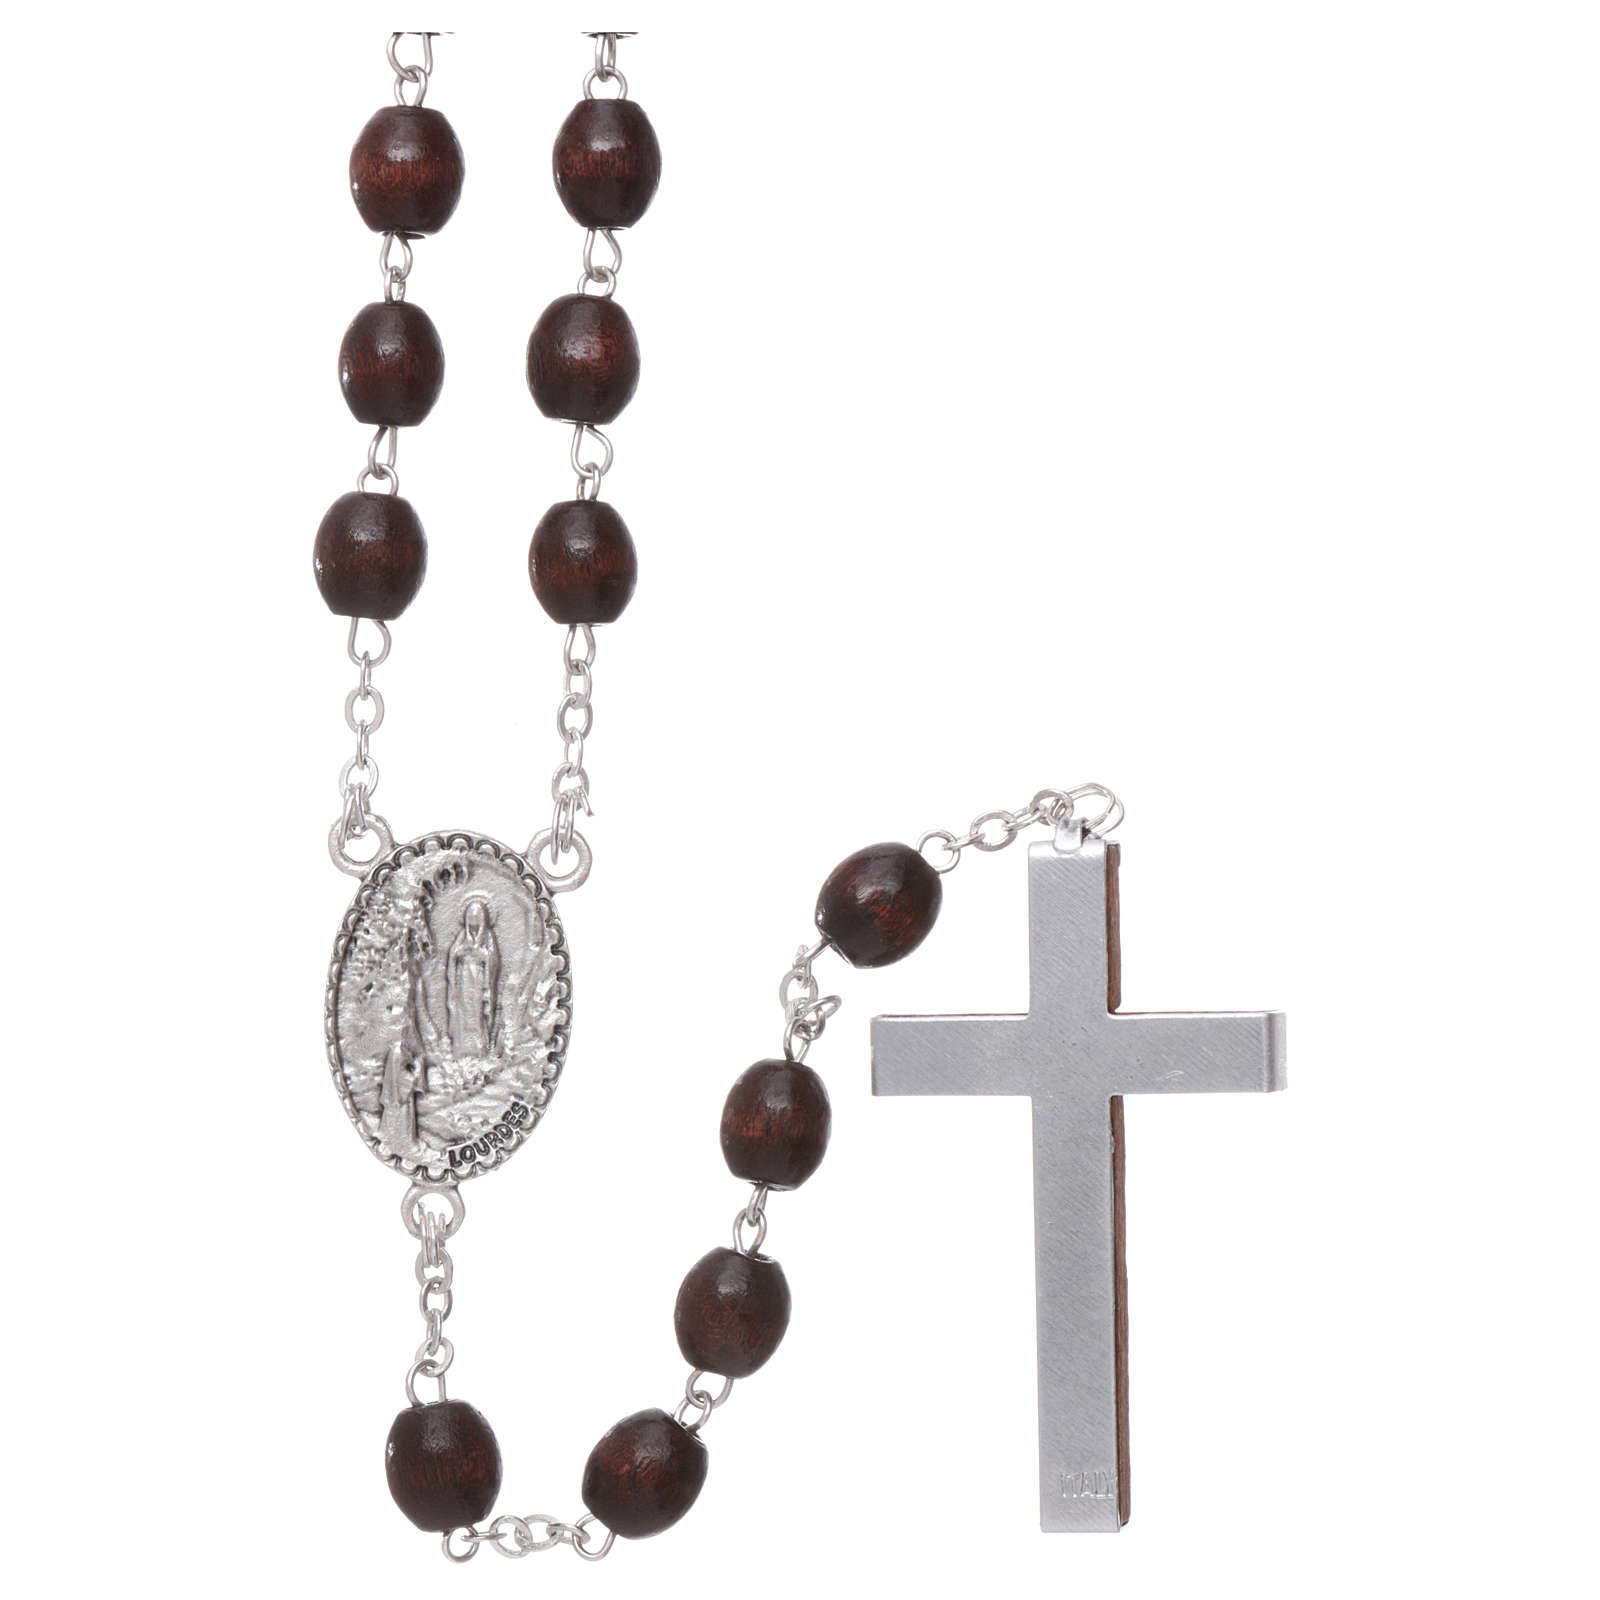 Our Lady of Lourdes wooden rosary 4 mm beads, dark brown 4